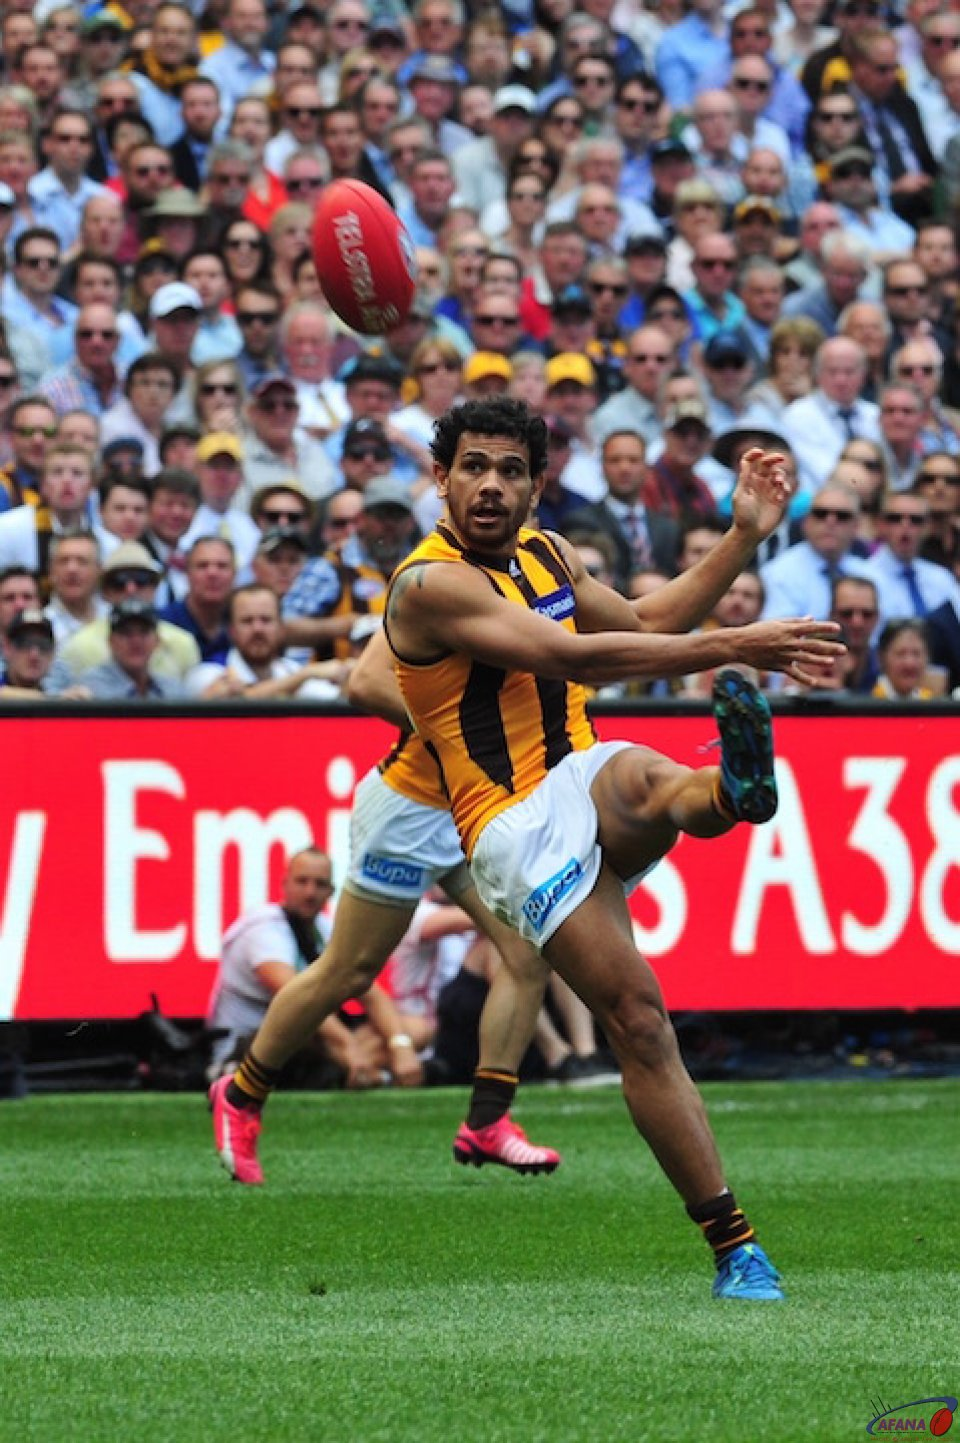 Cyril's snap misses